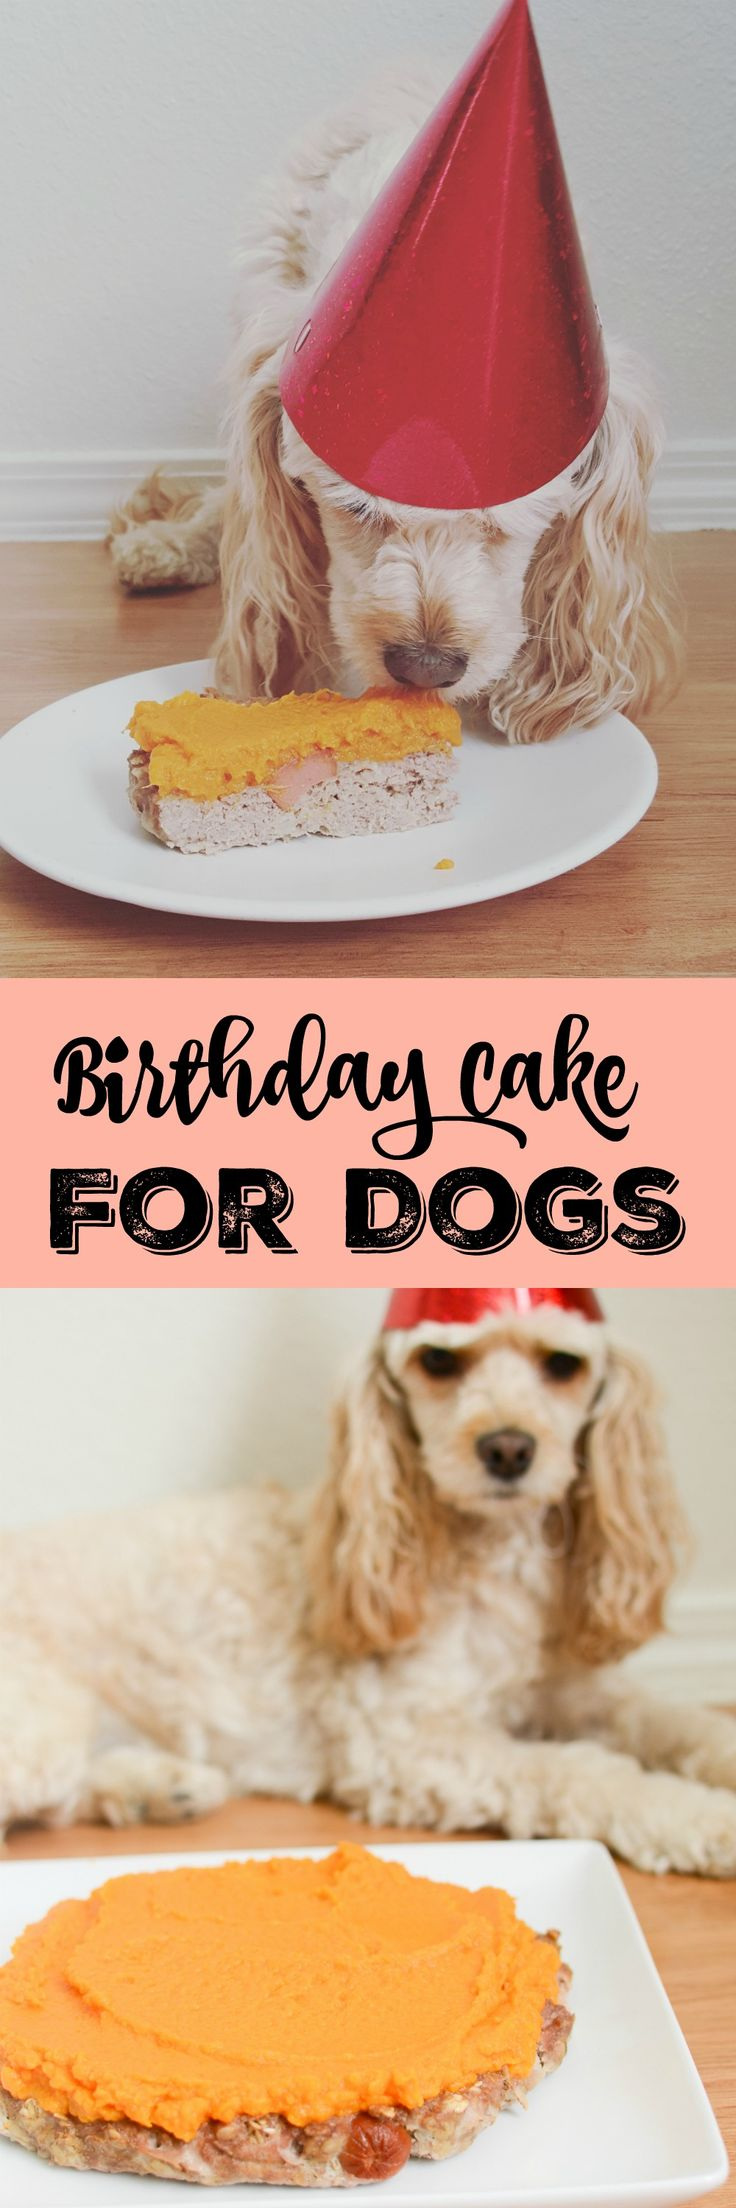 Birthday Cake for Dogs - homemade chicken cake for your pup's birthday! With…